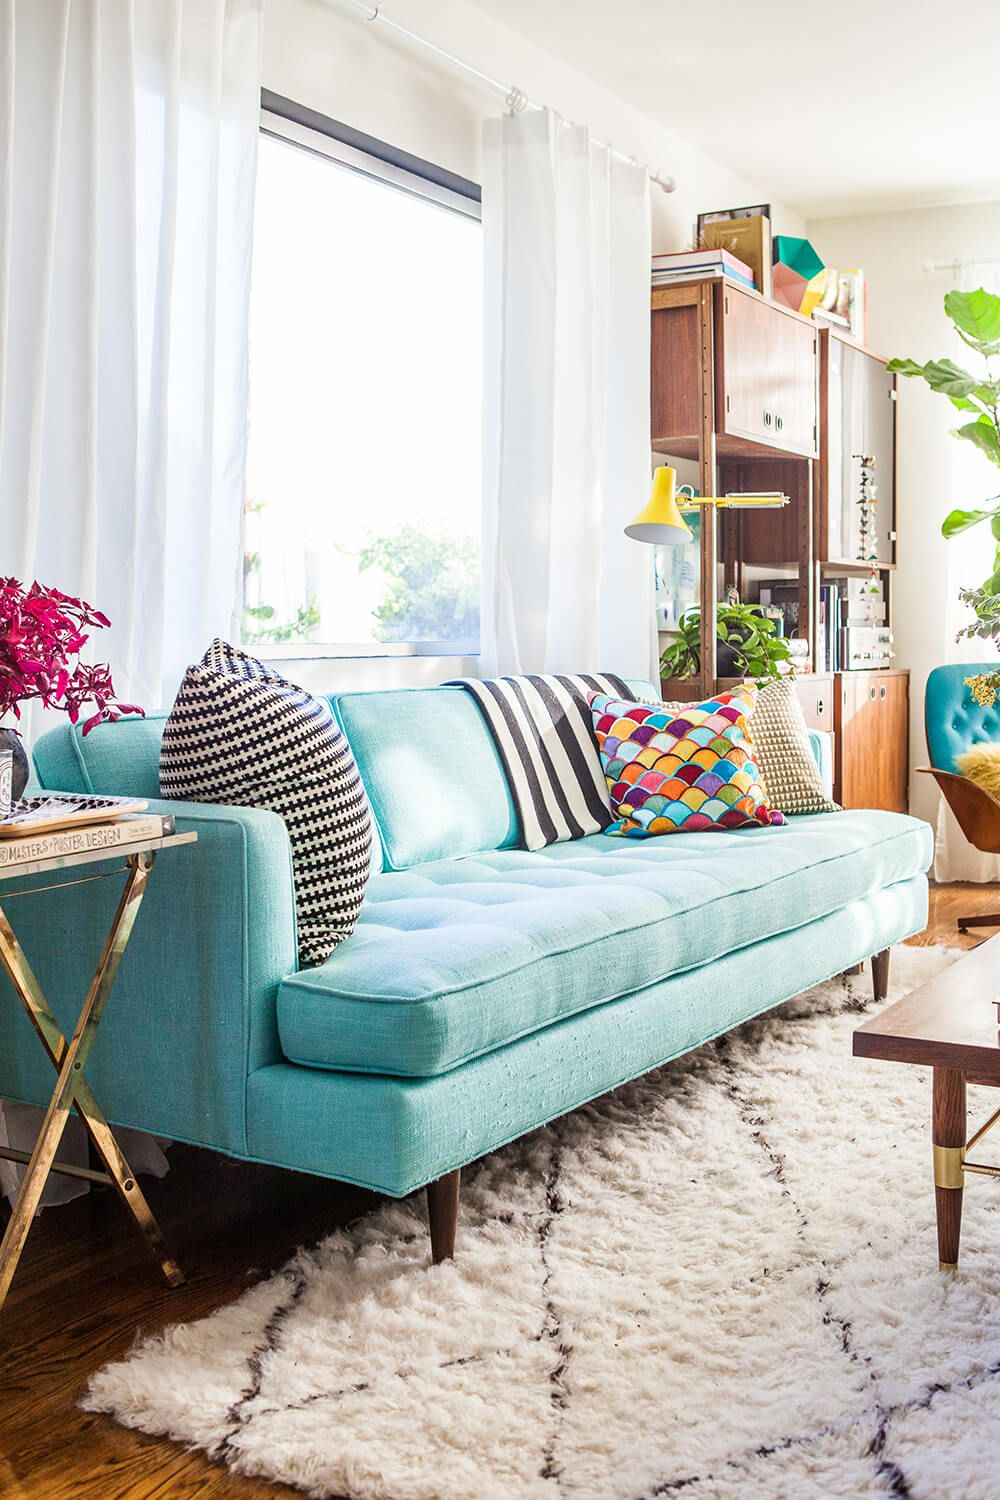 84 Affordable Amazing Sofas Under 1000 Emily Henderson